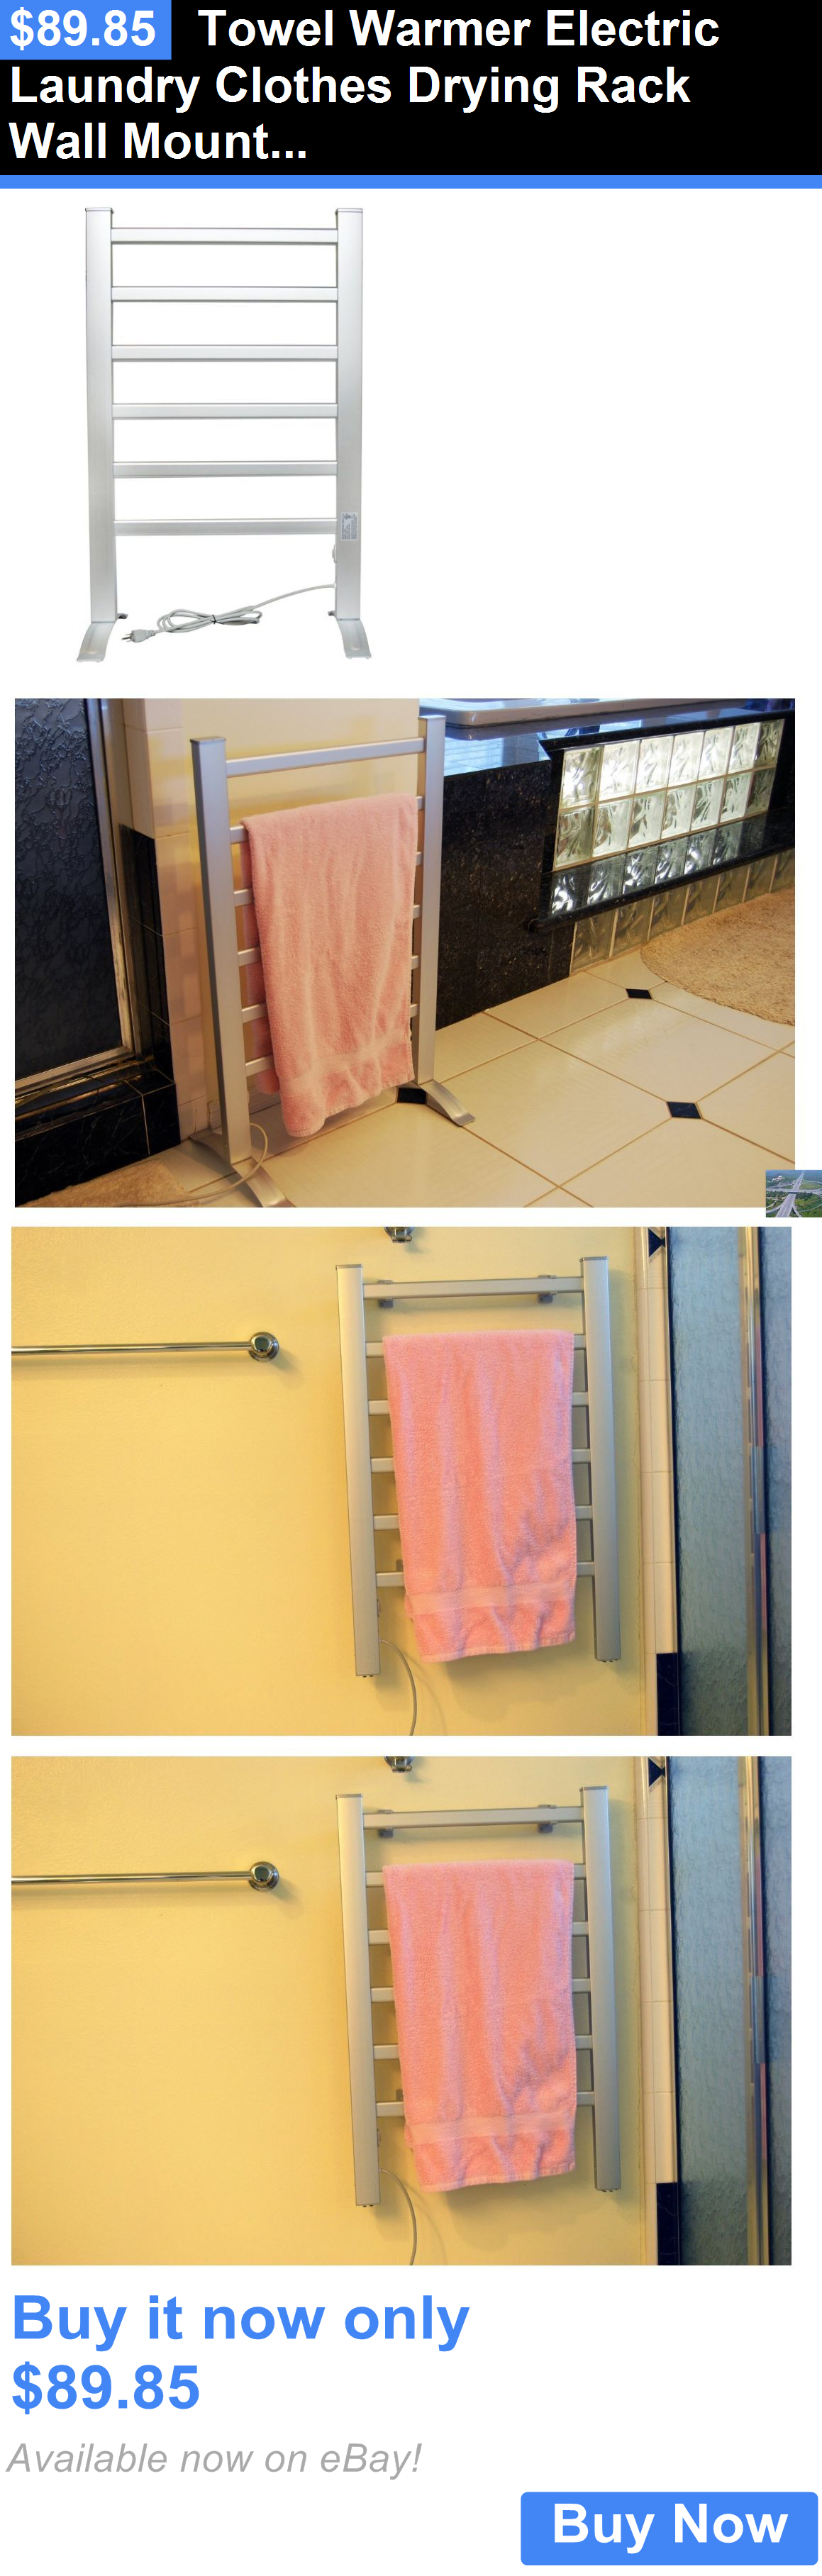 Sterilizers and towel warmers towel warmer electric laundry clothes